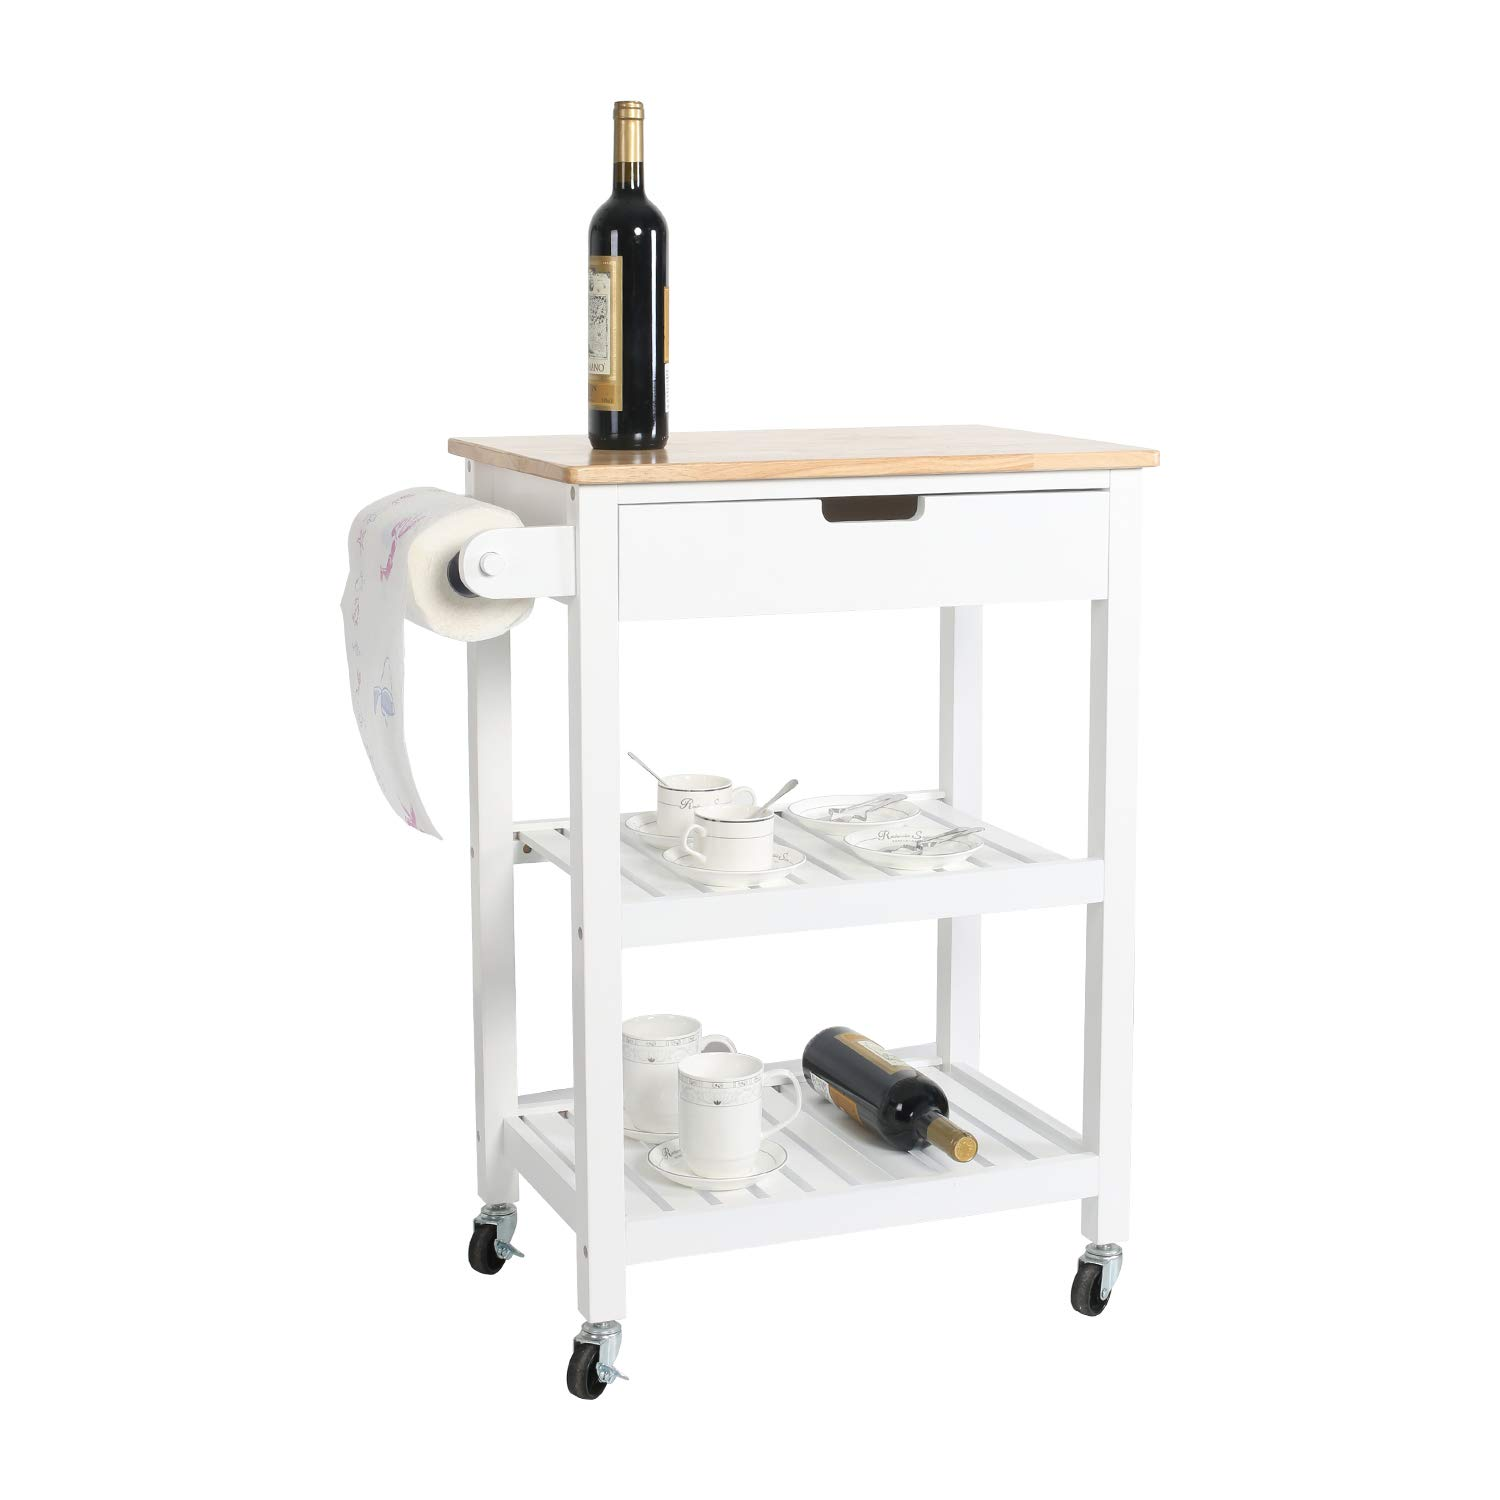 eclife Kitchen Islands Cart Rolling Kitchen Cart White Drawer Storage W/Wheels, 33''L x 22.8''L x 15.7''W, for Dining Rooms Kitchens & Living Rooms (White)